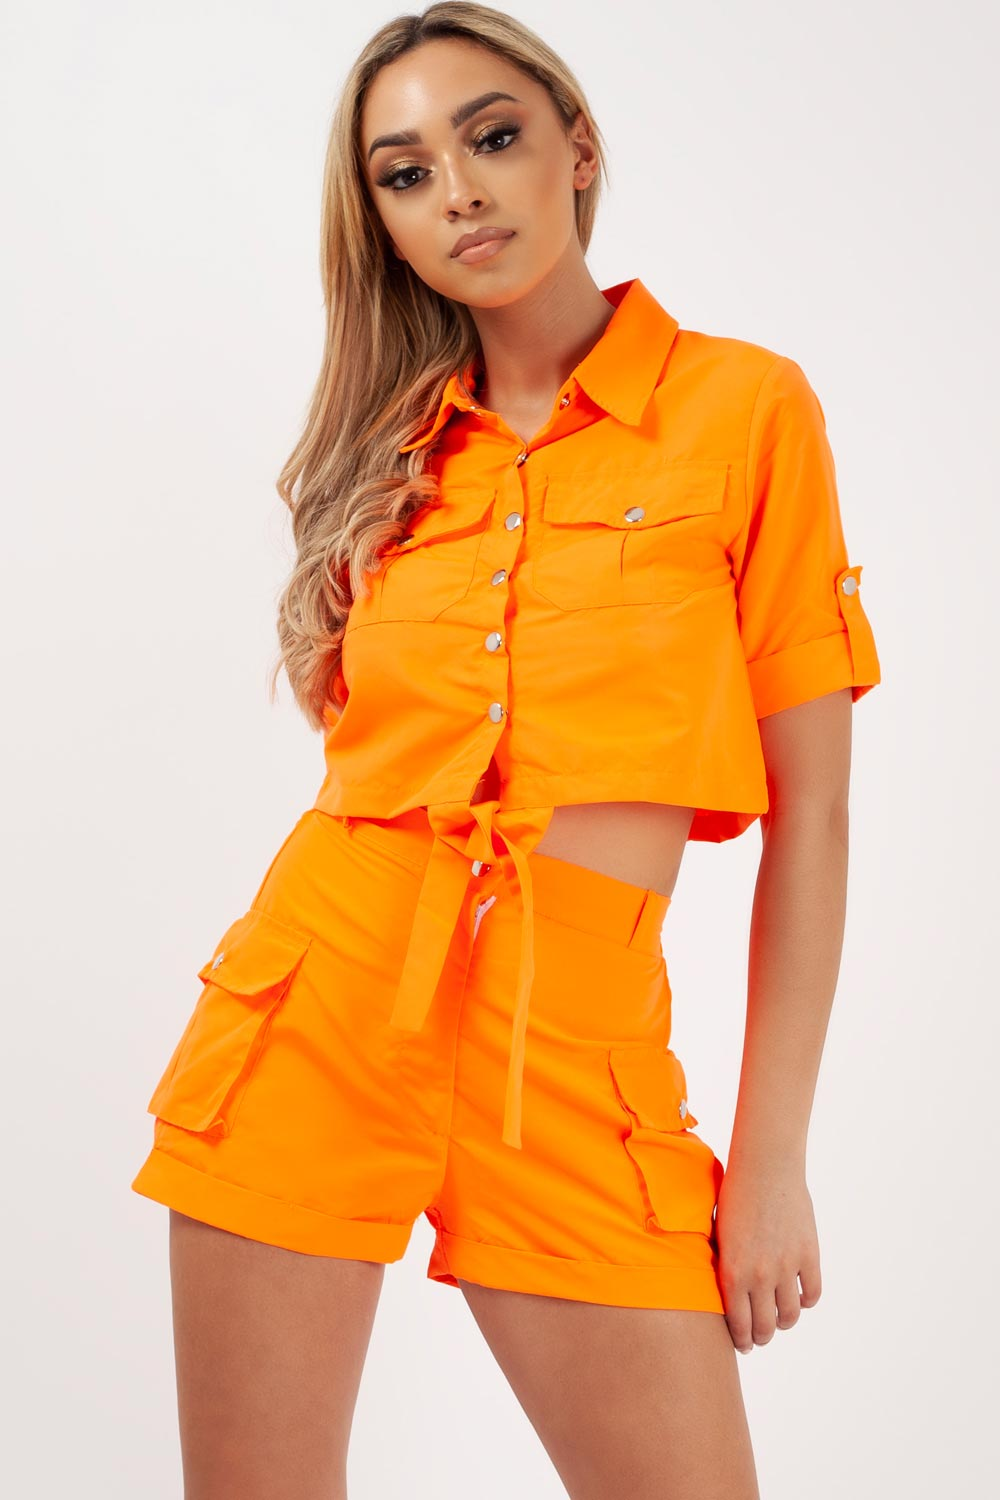 neon orange festival outfit uk